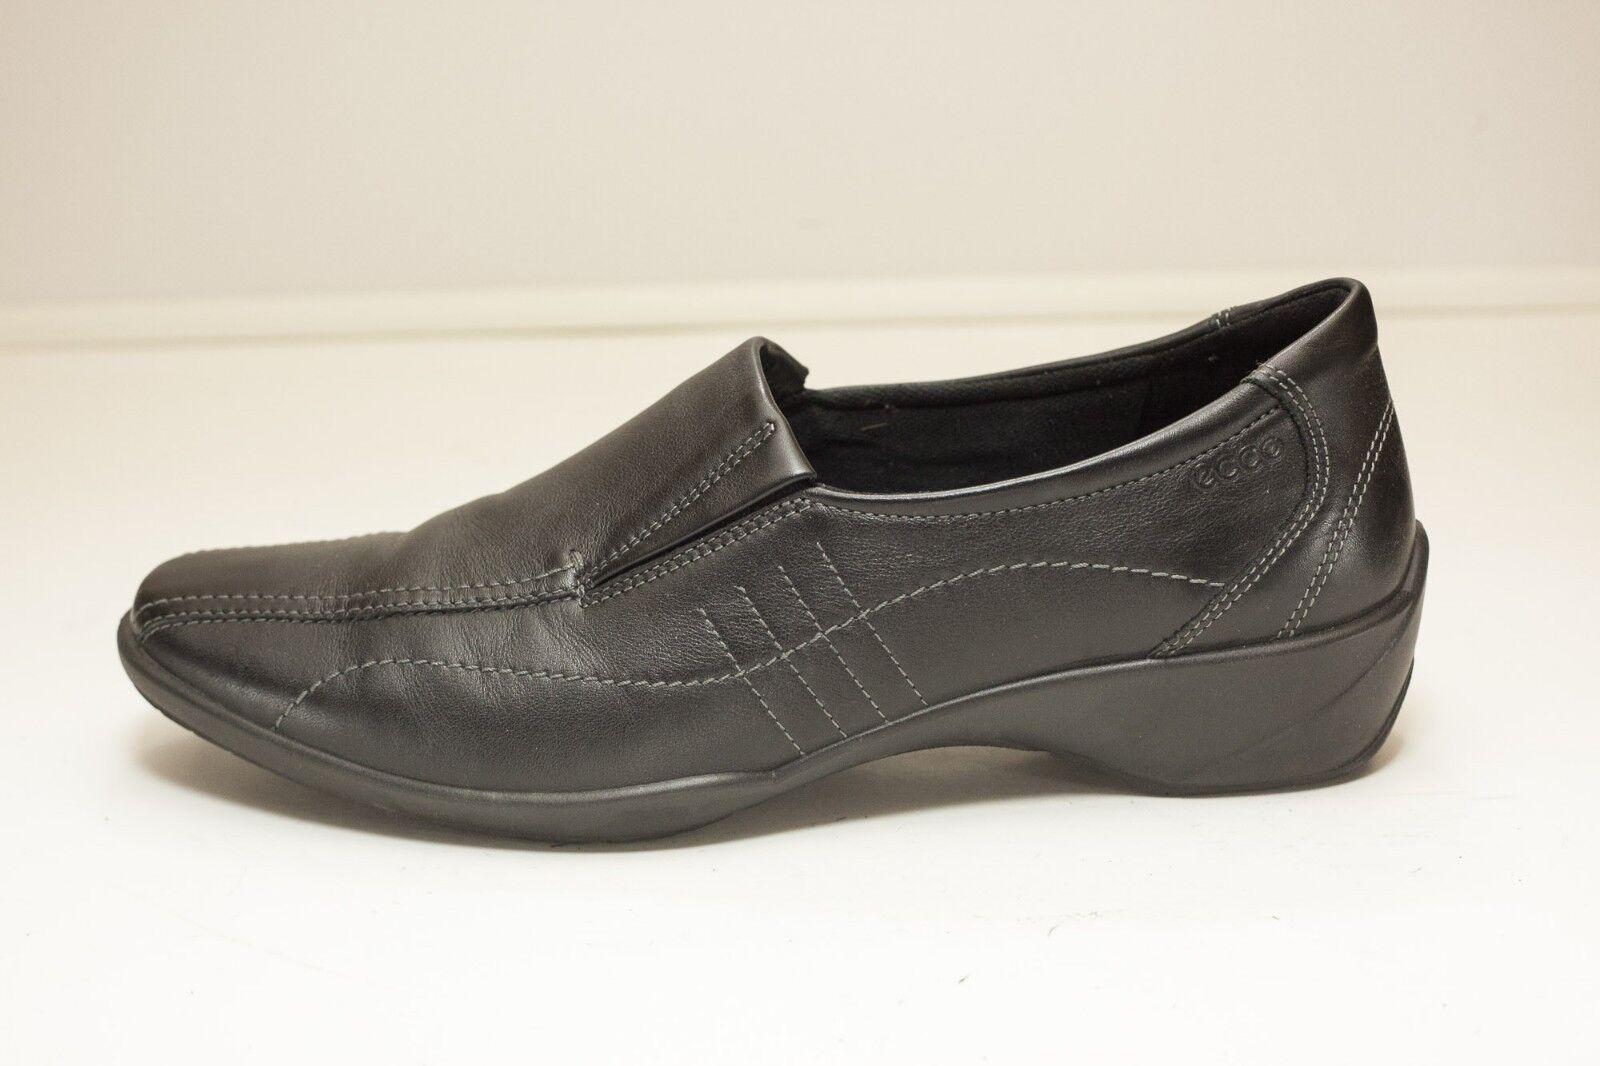 ECCO US 10 10 10 to 10.5 Black Slip On Loafers Women's EU 41 7b442d